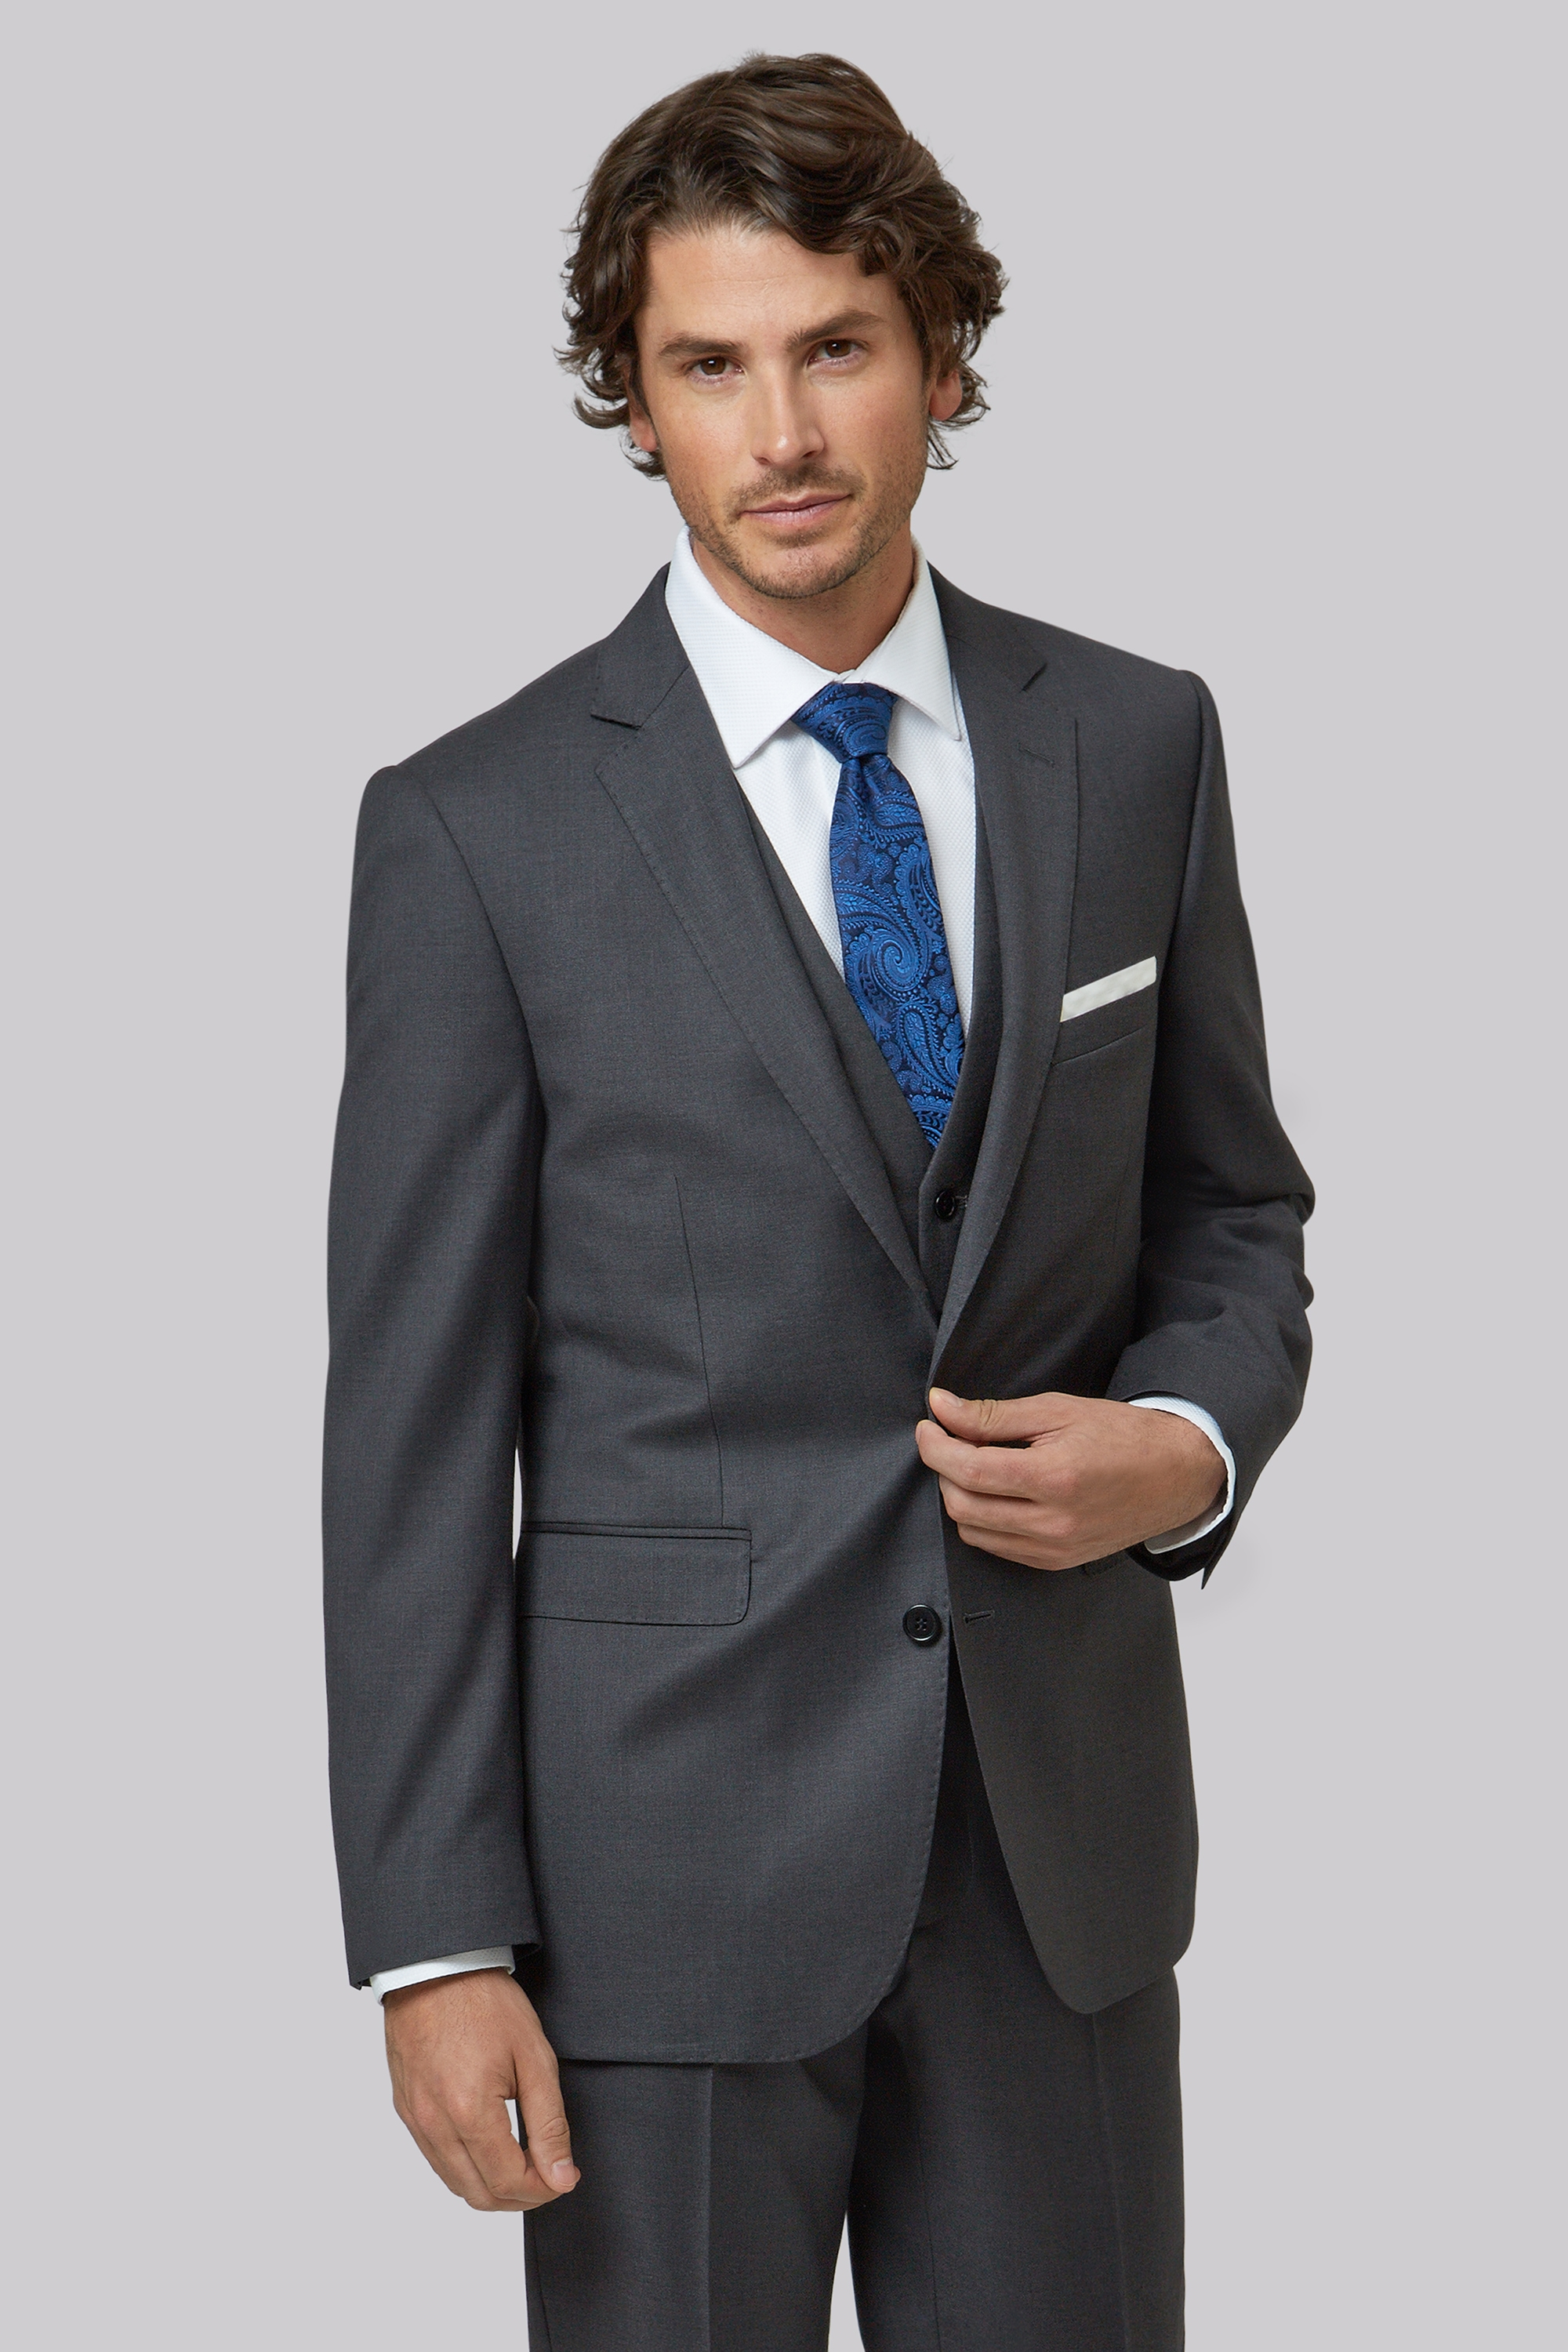 Lanificio F.lli Cerruti Dal 1881 Cloth Tailored Fit ...